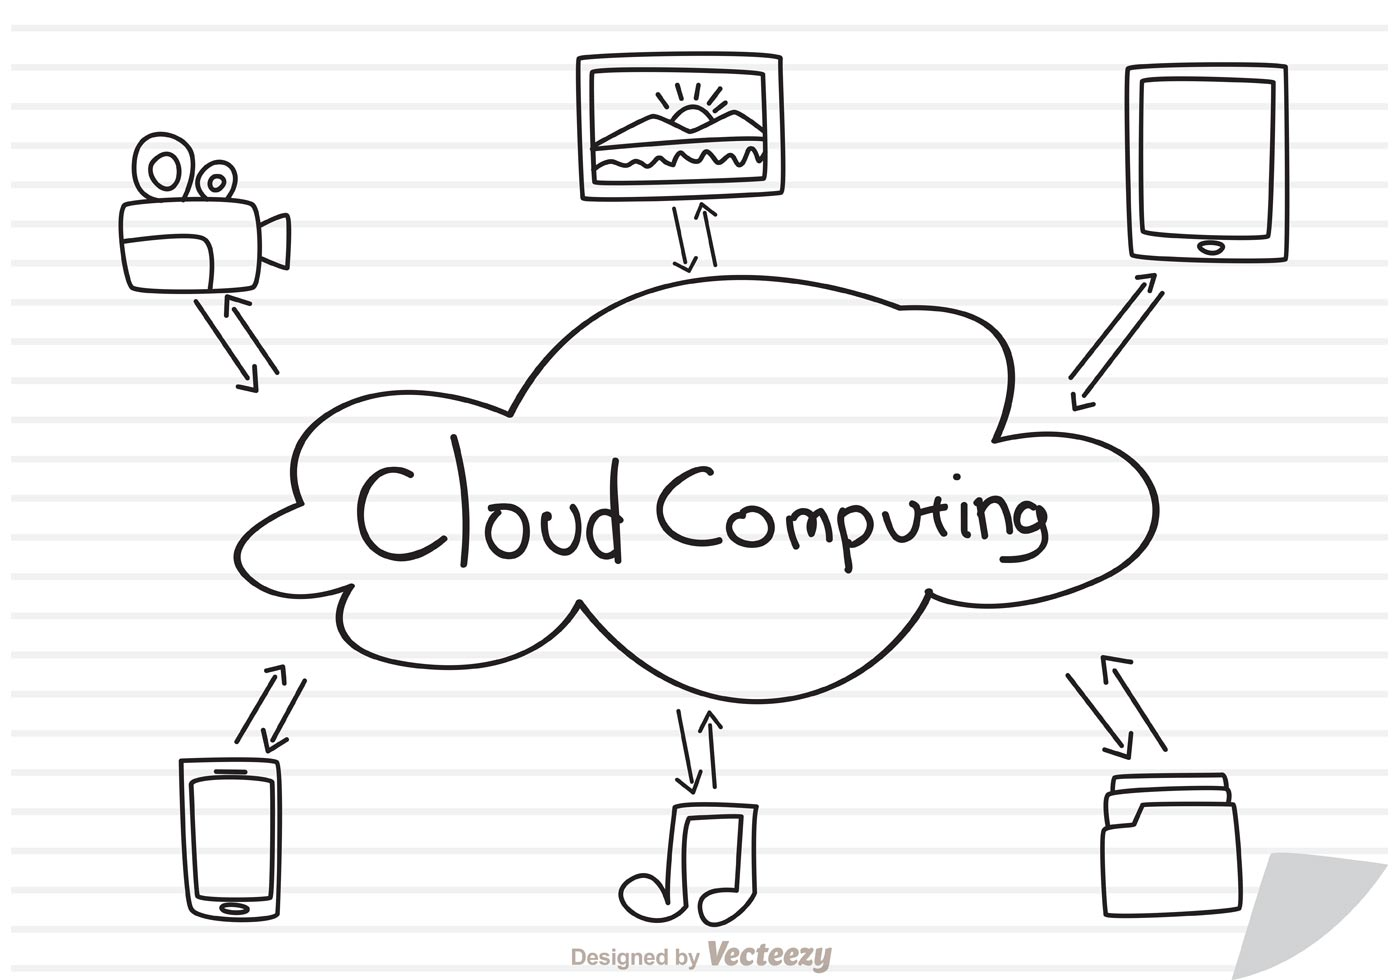 Cloud computing concept sketch on paper vector download for Sketch online free